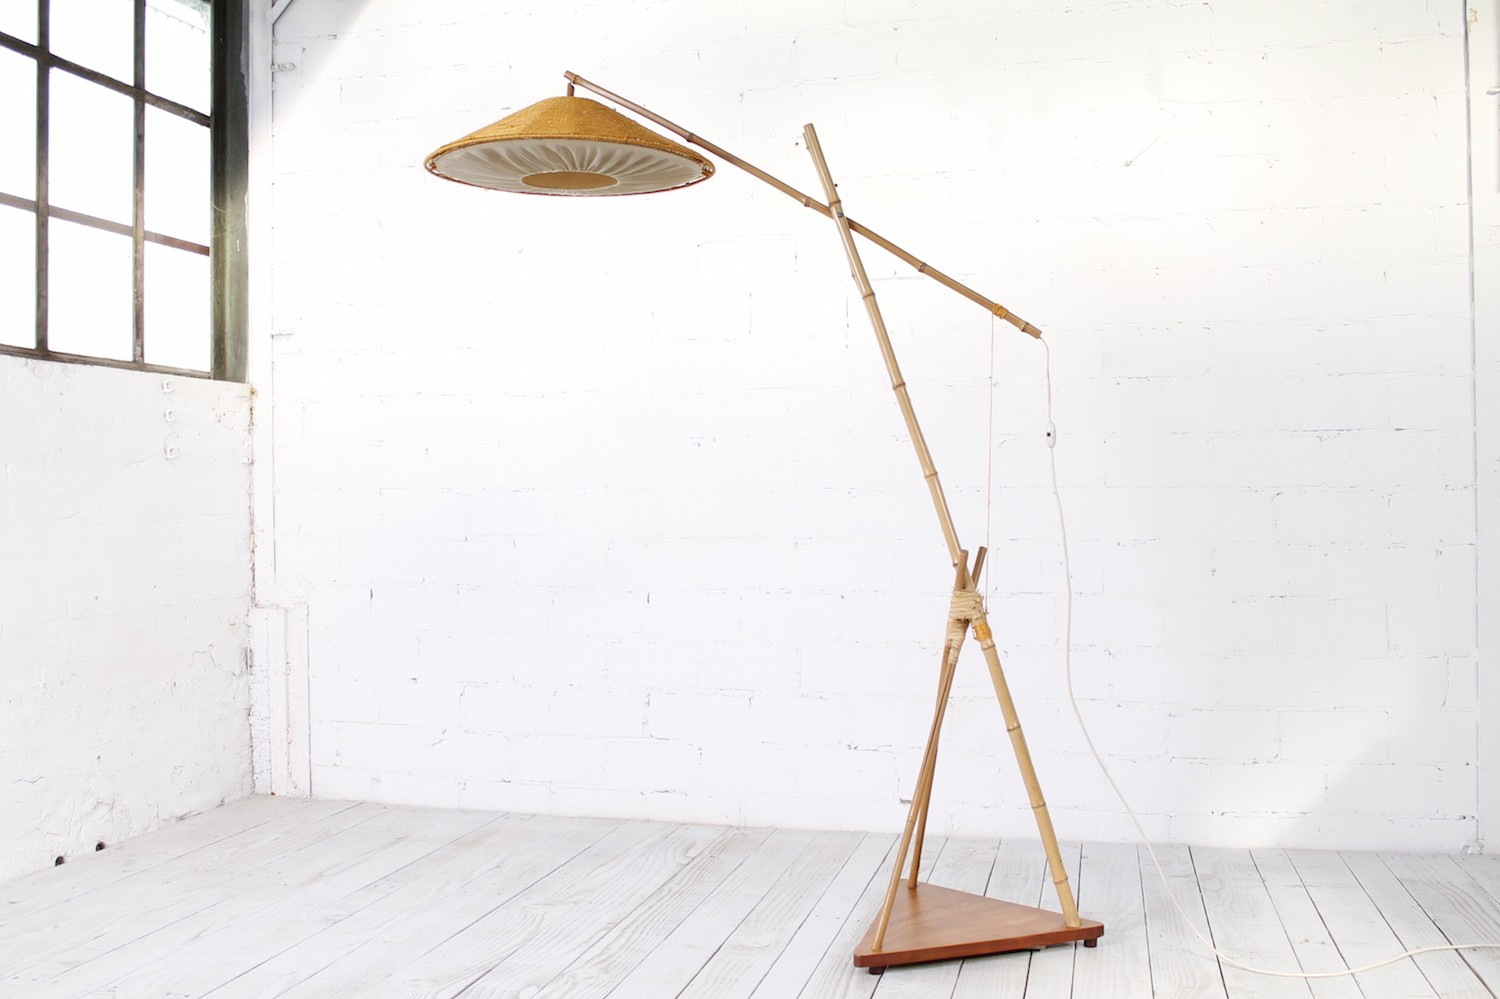 Vintage Bamboo Floor Lamp From Munich 1950s Design Market